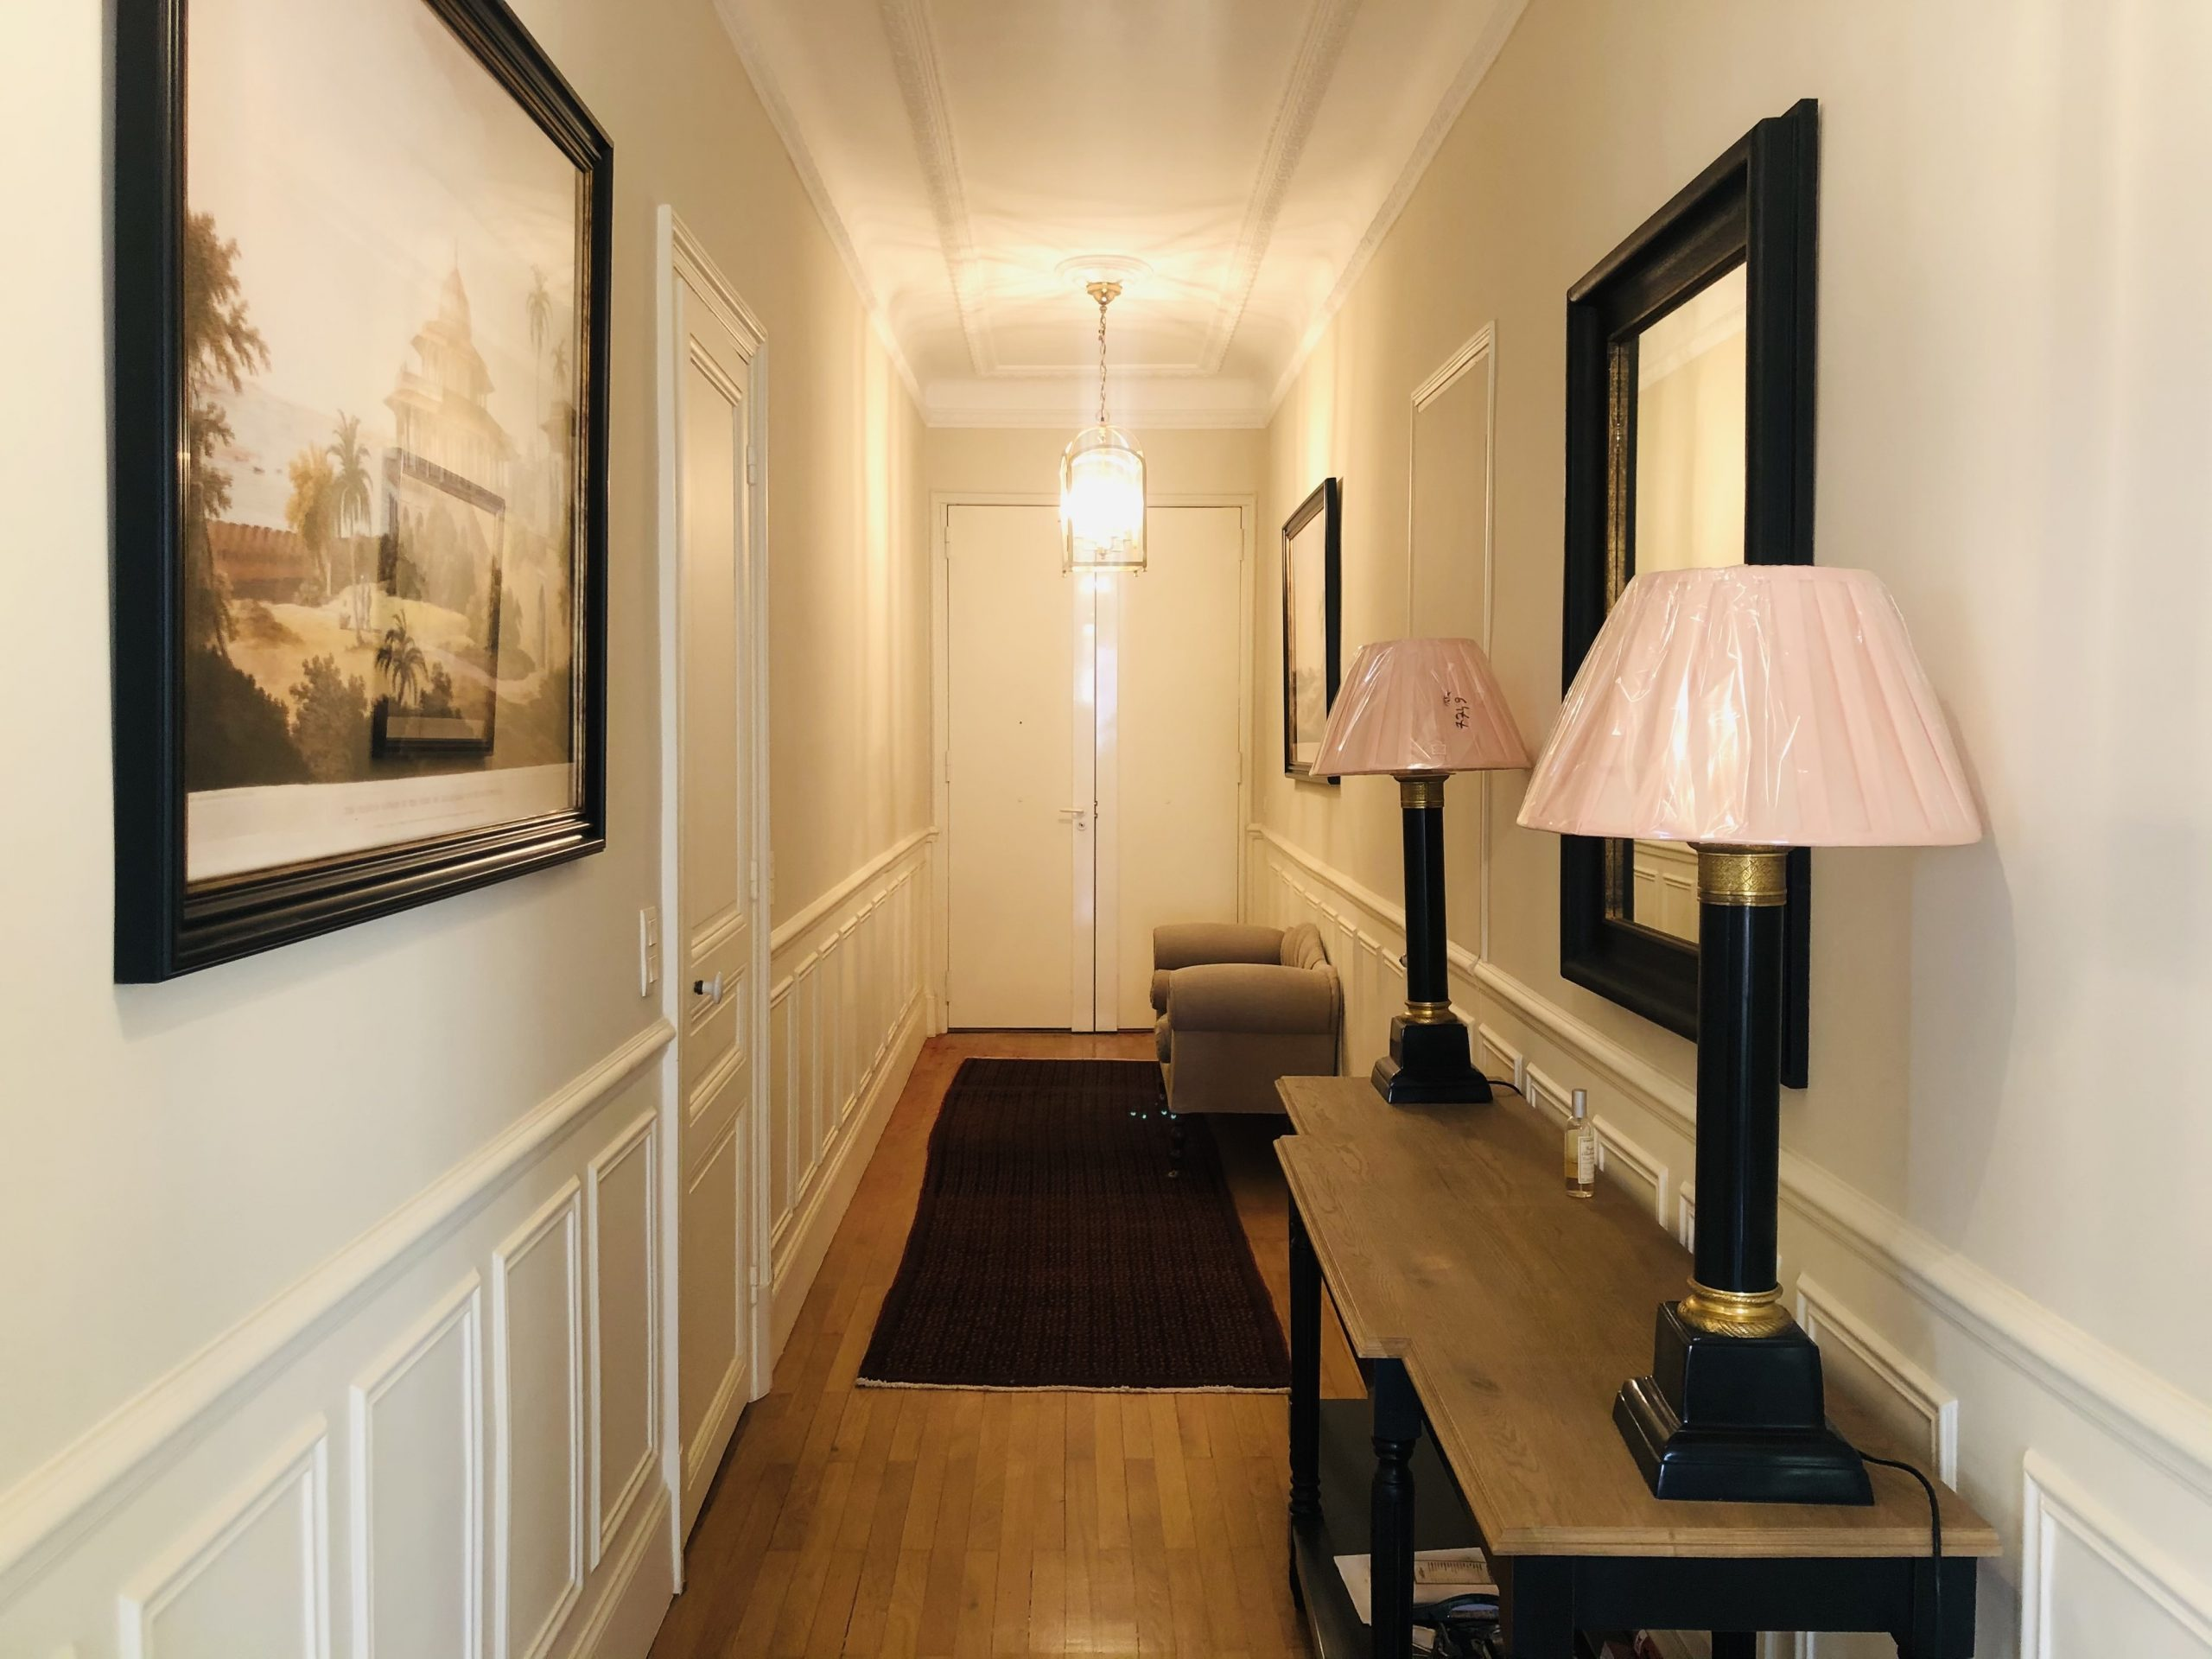 Nice Carré d'Or – Luxurious 3 Bedrooms Apartment 135 sqm in a Belle Epoque Building.